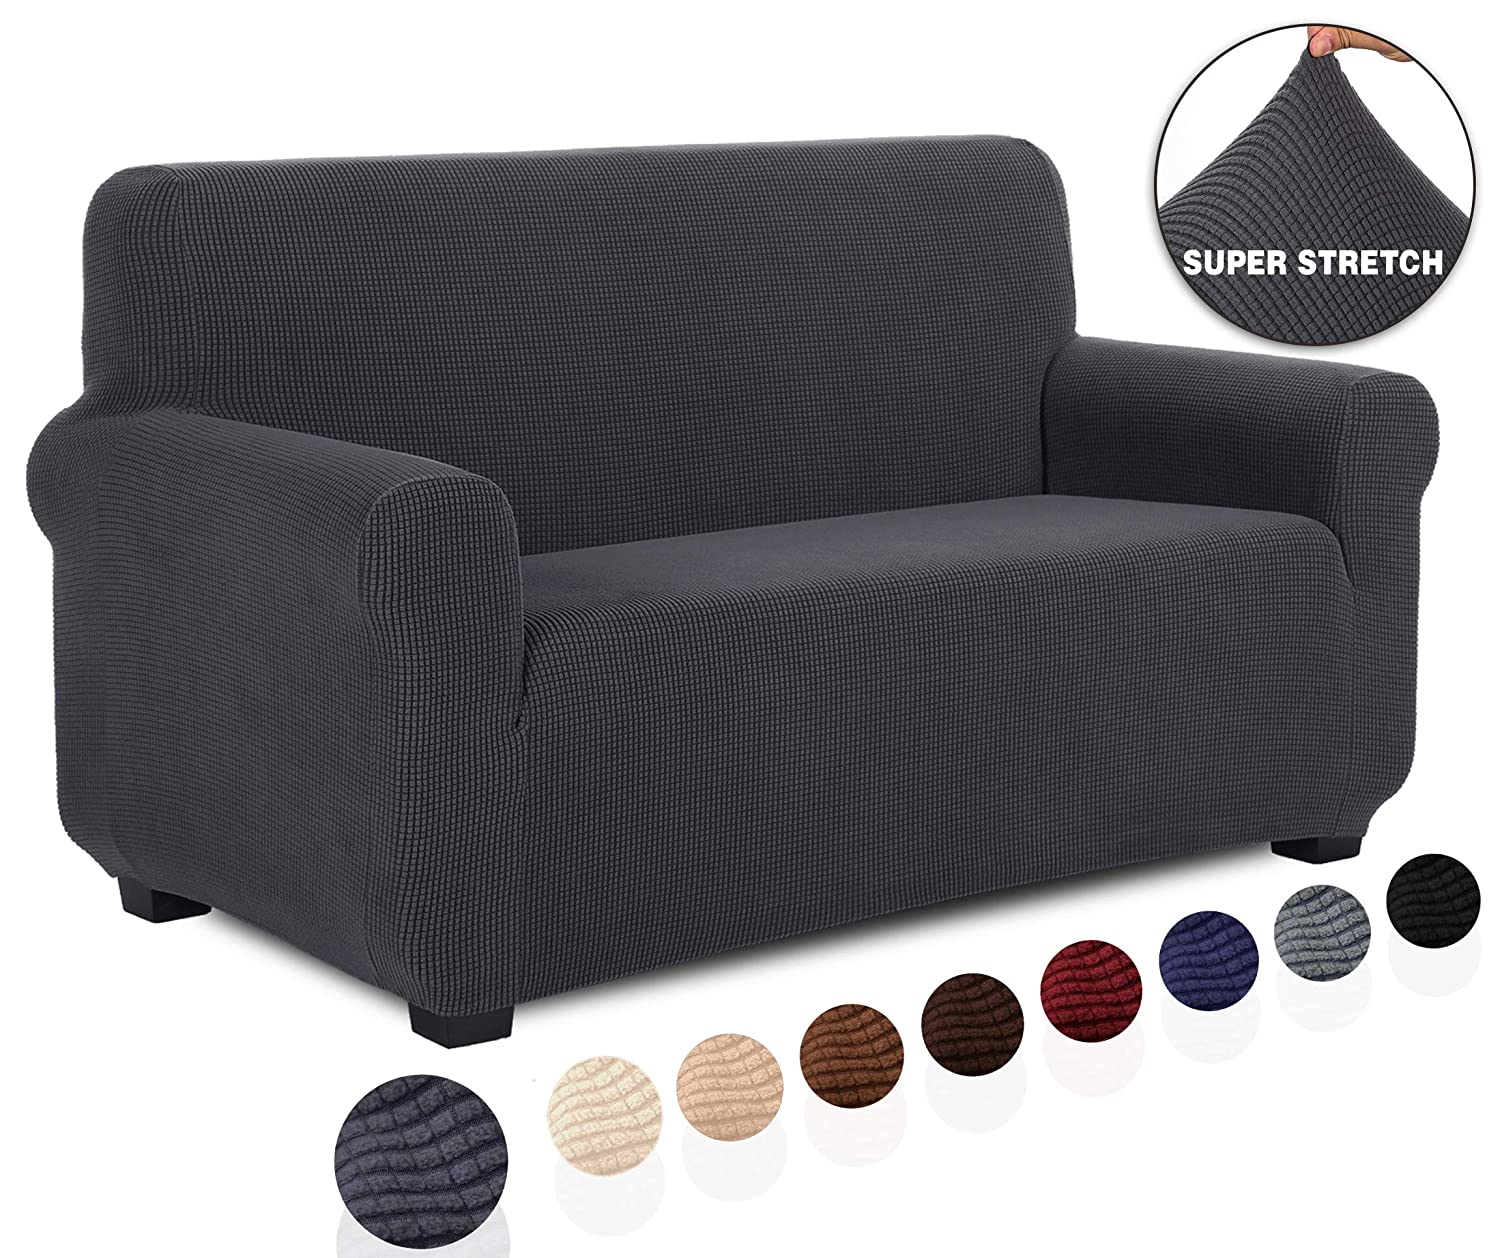 Enjoyable Tianshu Loveseat Slipcover Furniture Protector Non Slip 2 Cushion Couch Covers For Dogs Soft Durable Stay In Place Sofa Cover Loveseat Gray Pabps2019 Chair Design Images Pabps2019Com